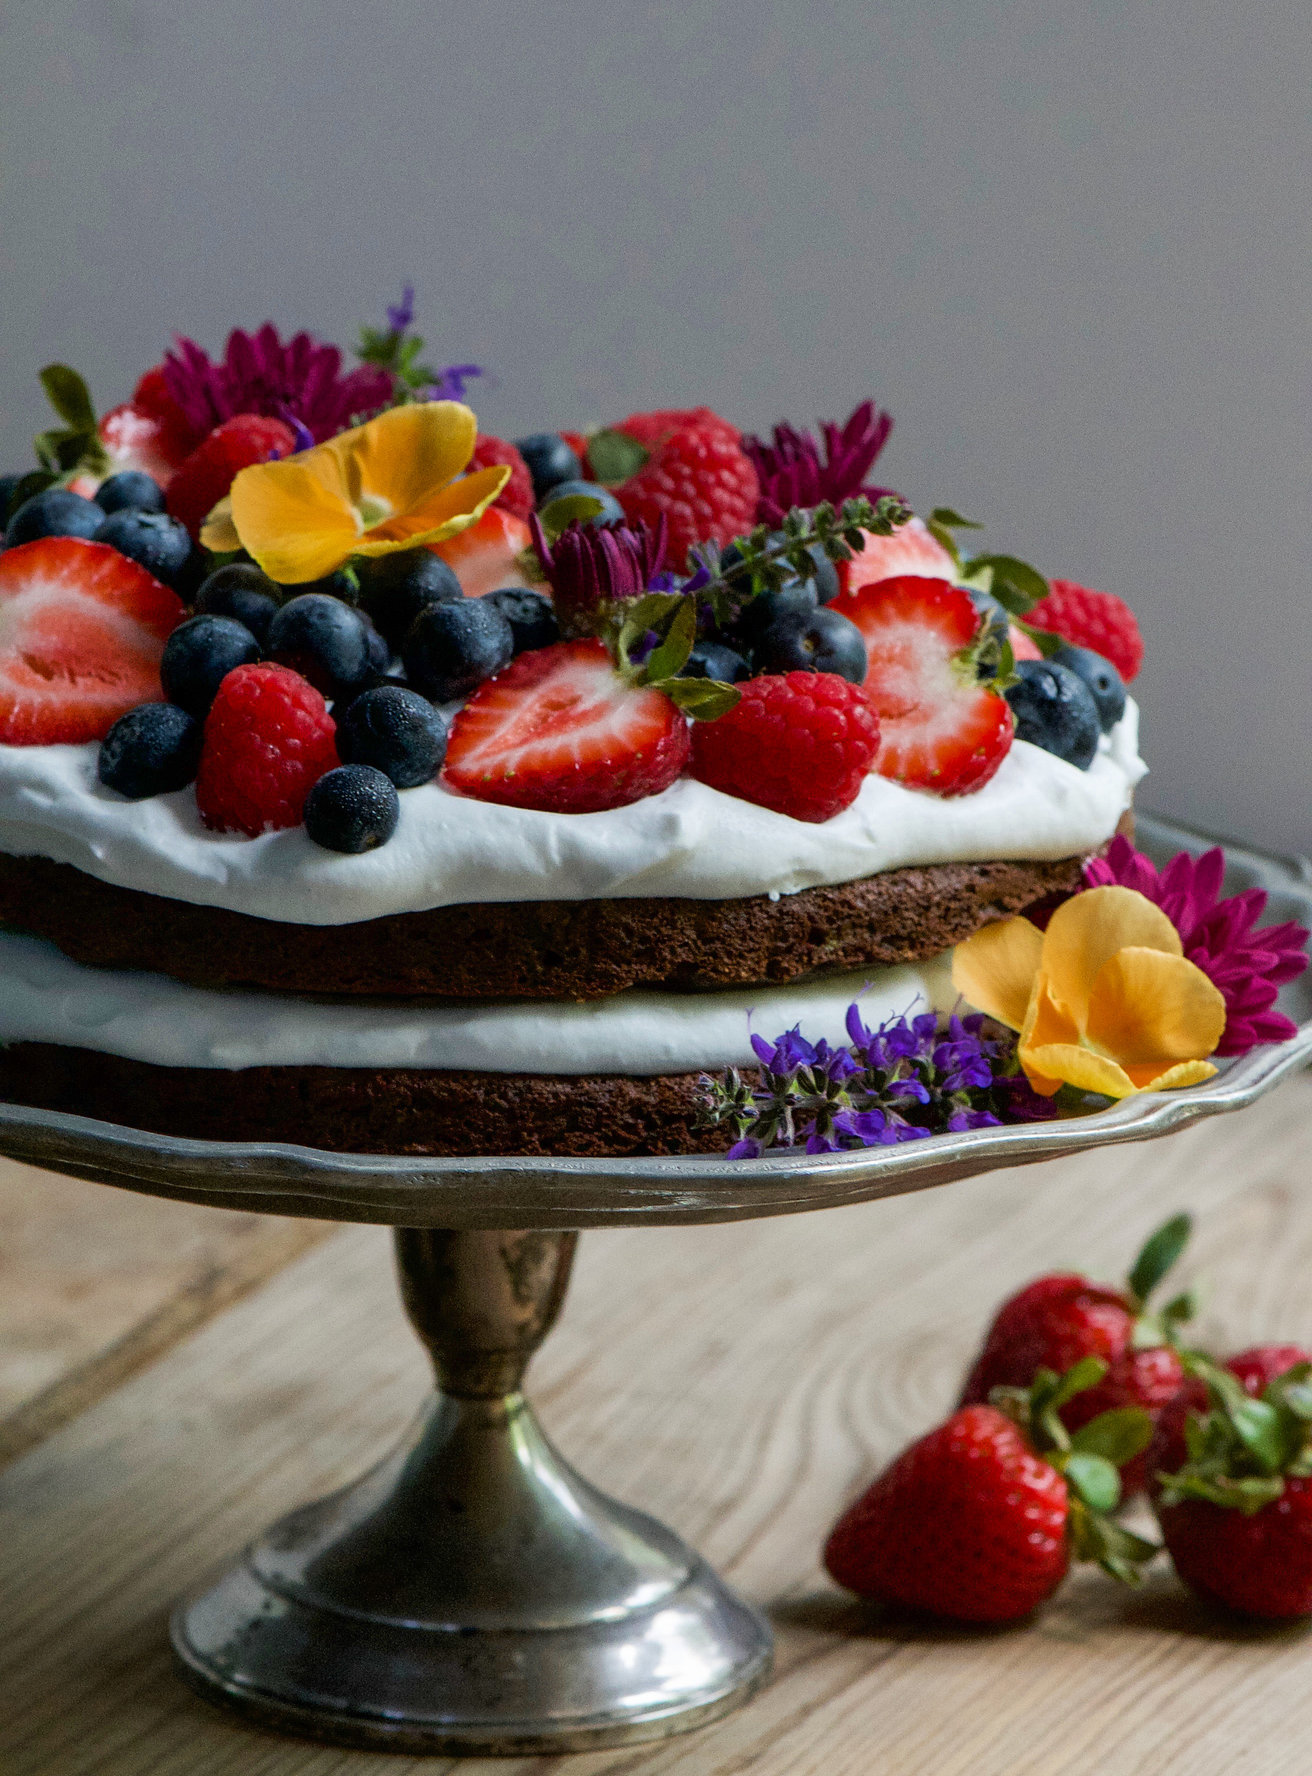 Cake Made With Soda And Fruit